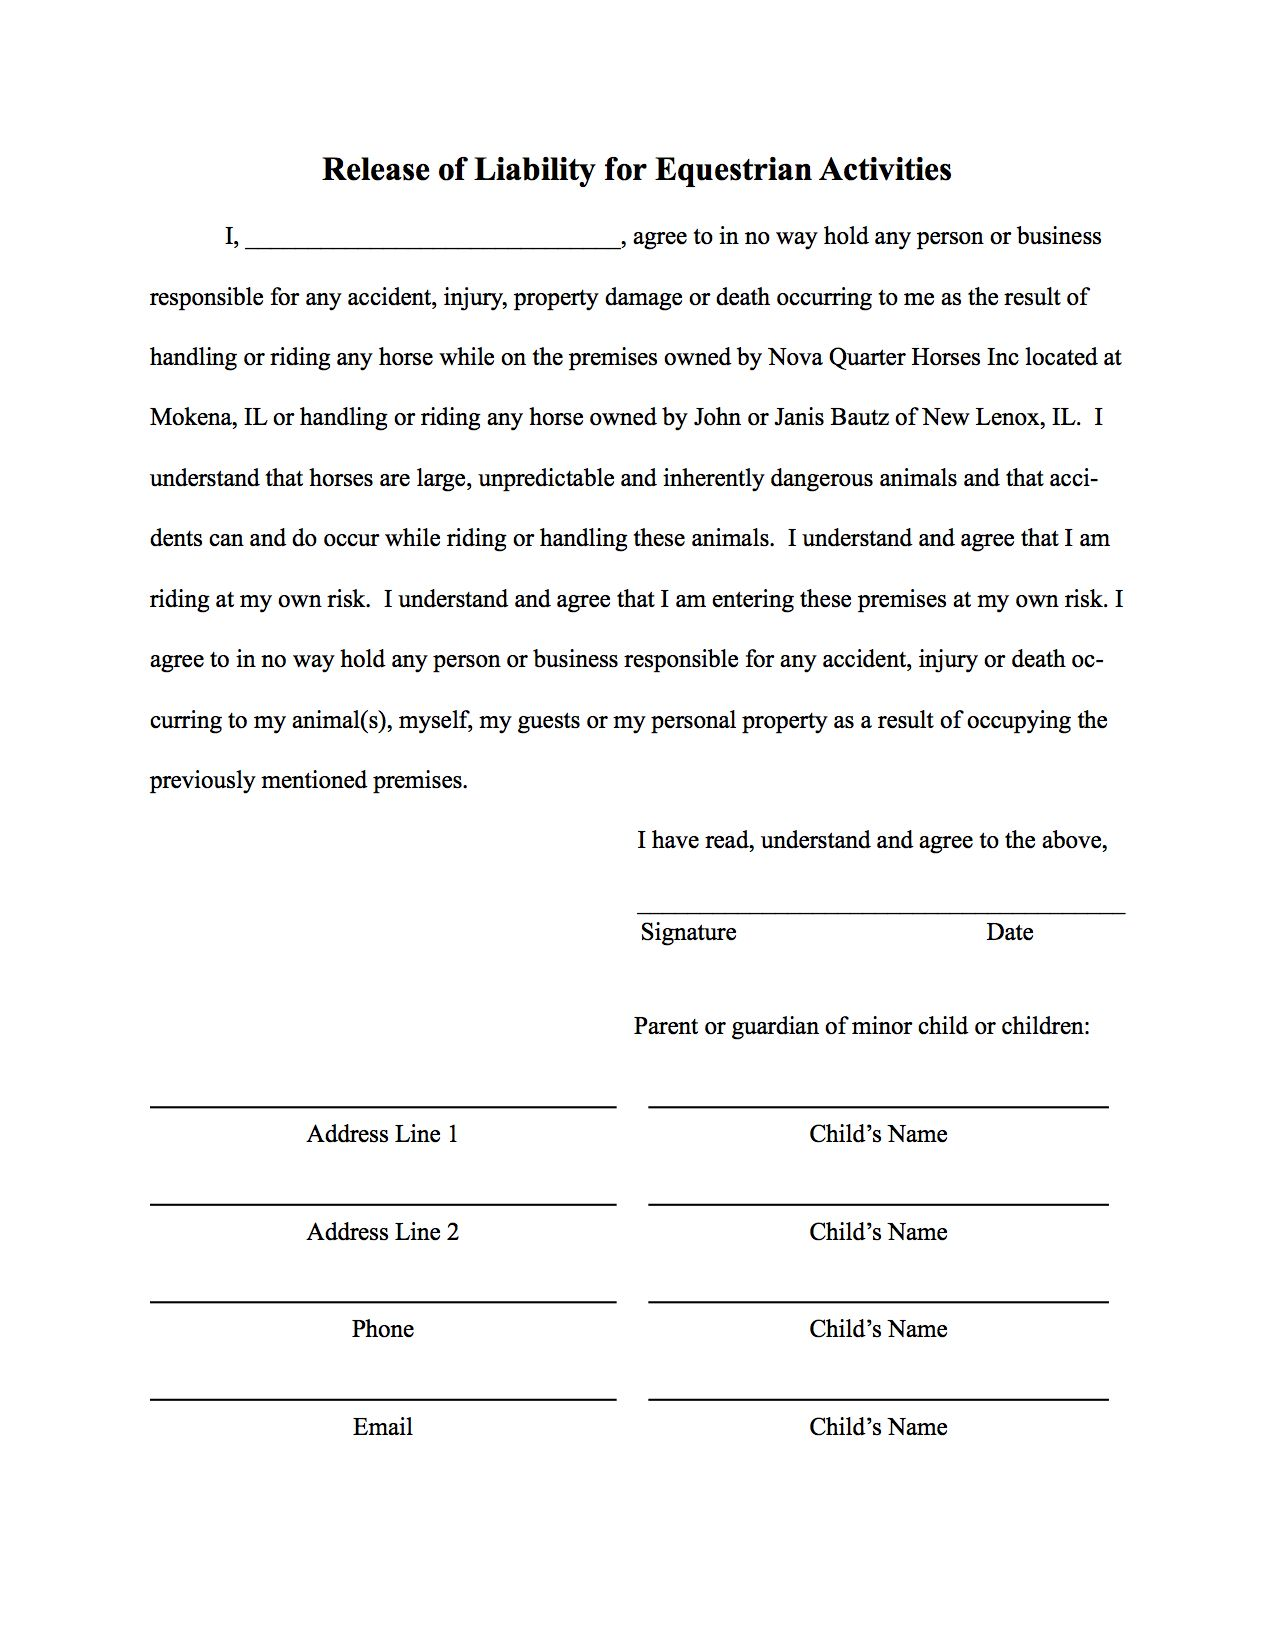 Liability Waiver Form Template Release Of Liability Form Waiver Of Liability  Template With Sample, Liability Waiver Template Free Word Templates  Liability, ...  Legal Liability Waiver Form